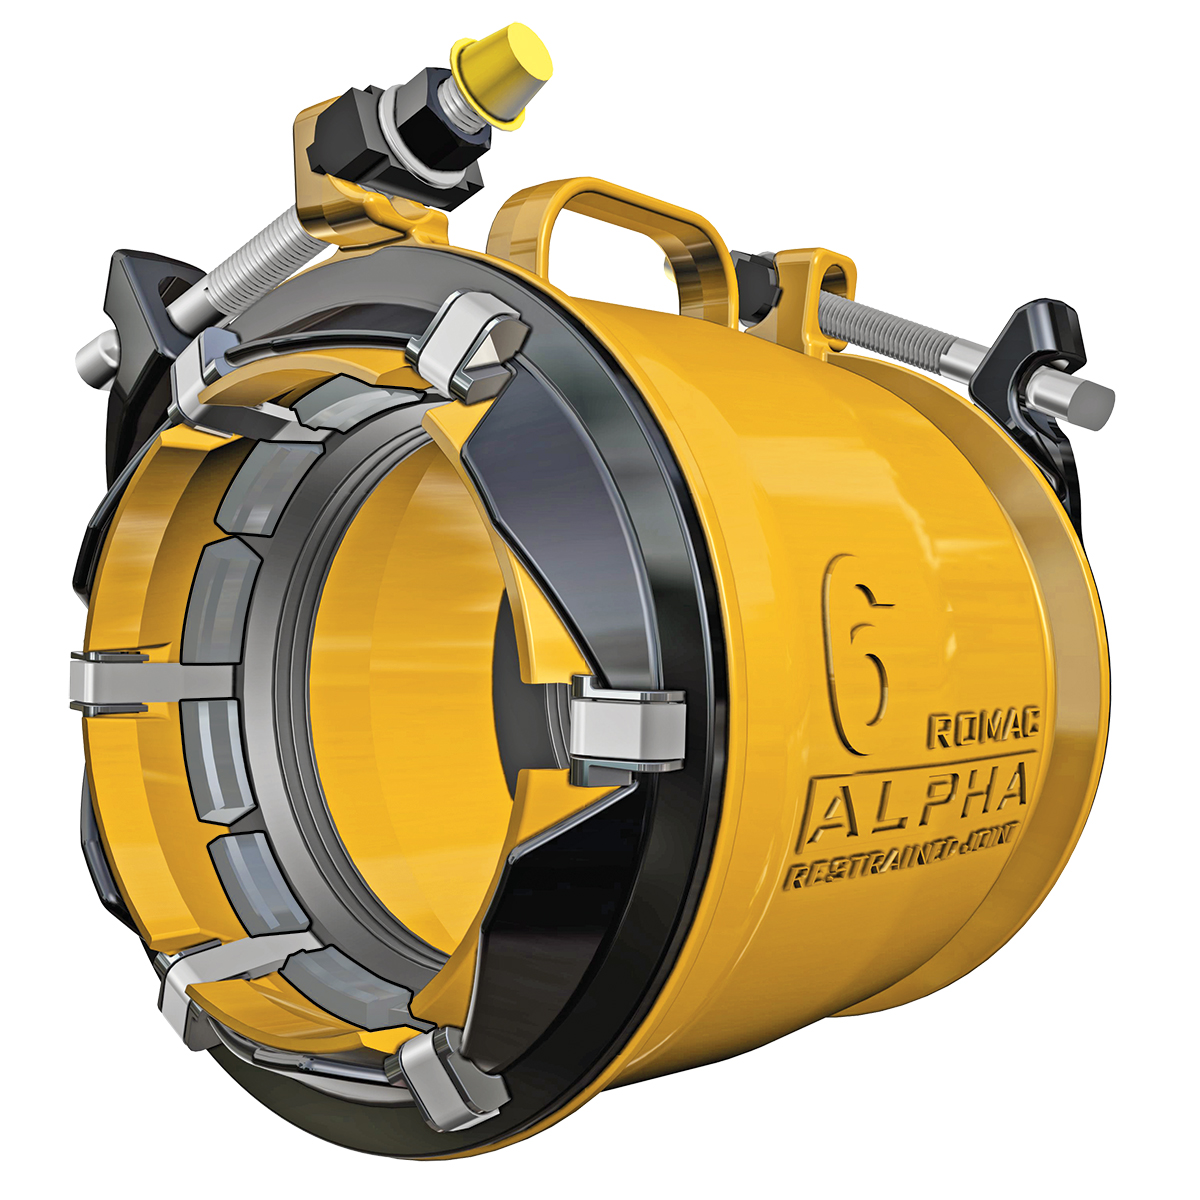 ALPHA - Stab-fit wide range coupling with restraintNominal Sizes4 - 12 inchesWorking PressureUp to 350 psiPipe Compatibility Ductile Iron, Cast Iron, PVC and HDPE